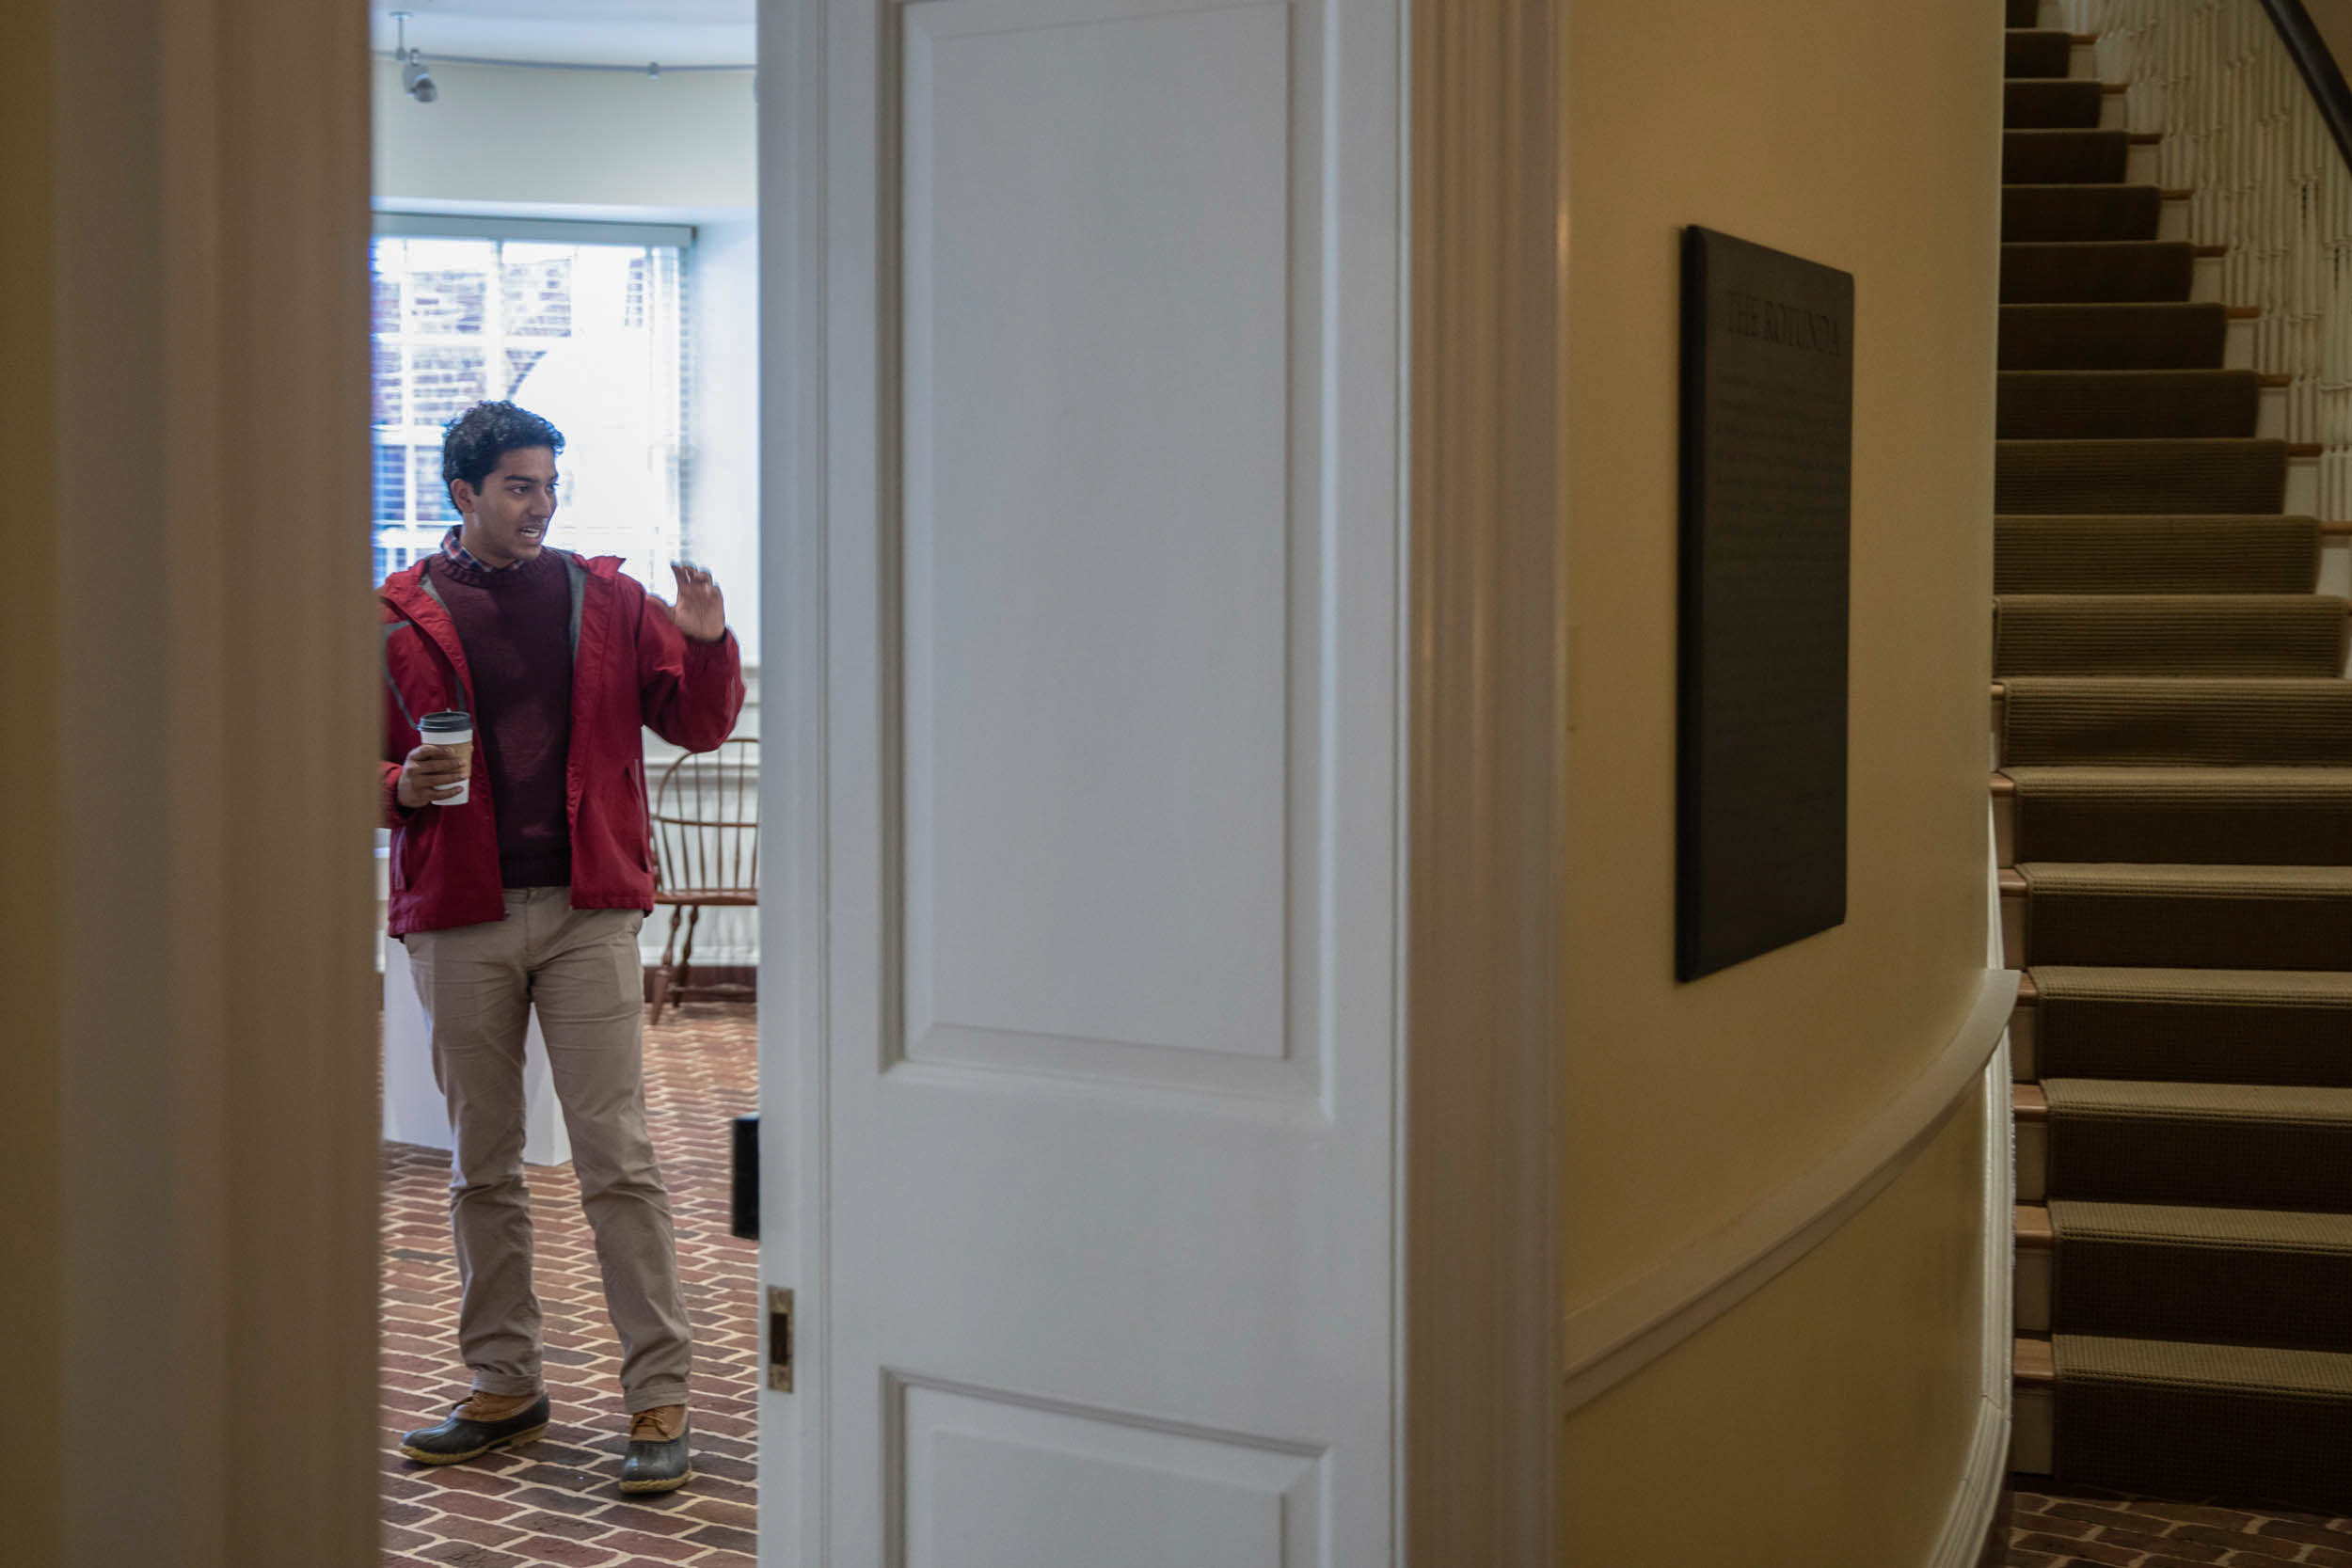 Samuel begins a tour in the Rotunda's Lower East Oval Room, home to a museum exhibit that highlights the Thomas Jefferson-era chemical hearth, which was part of an early science classroom.